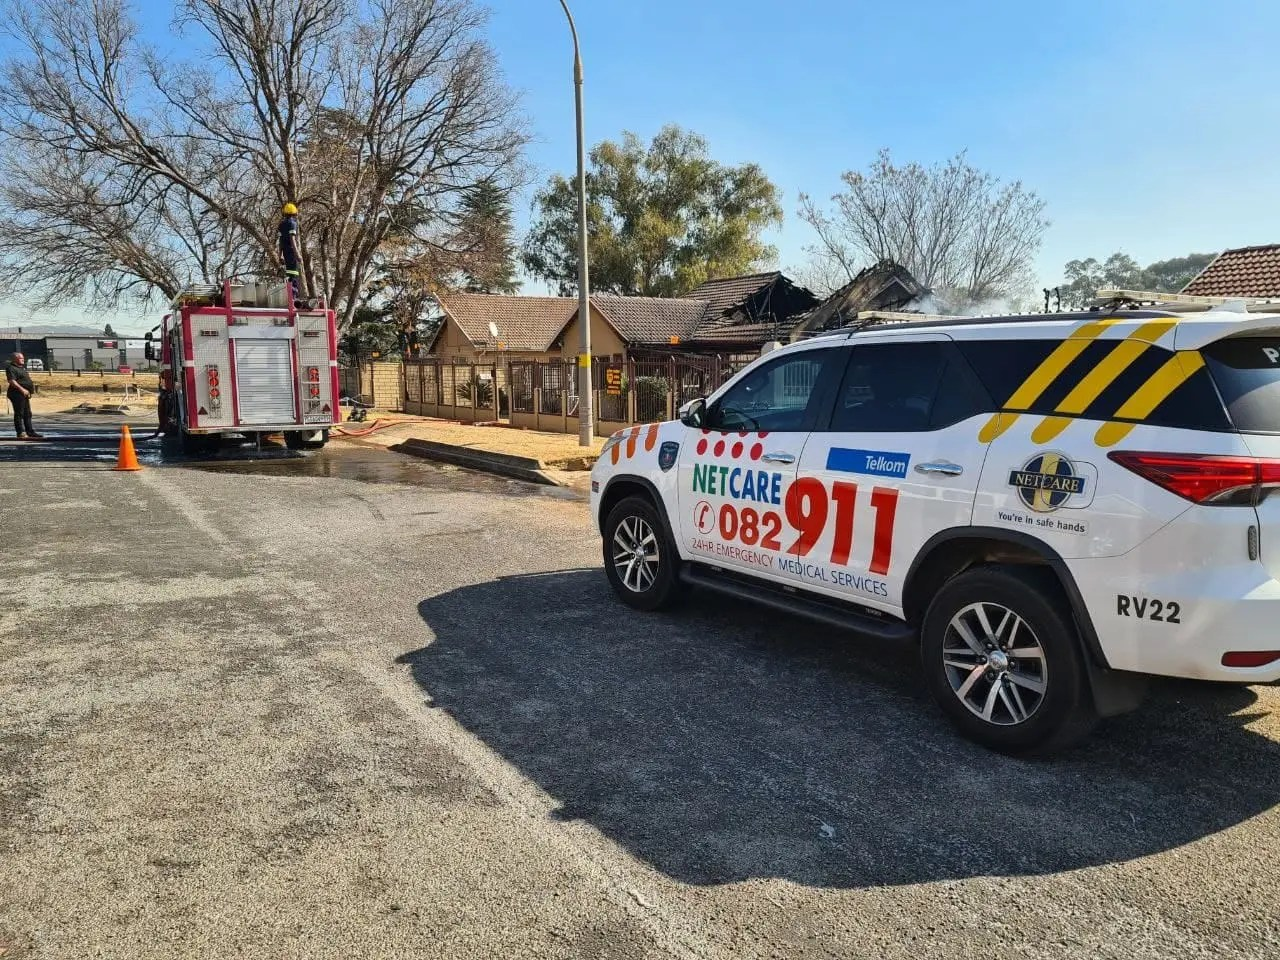 No injuries reported in Alberton house fire